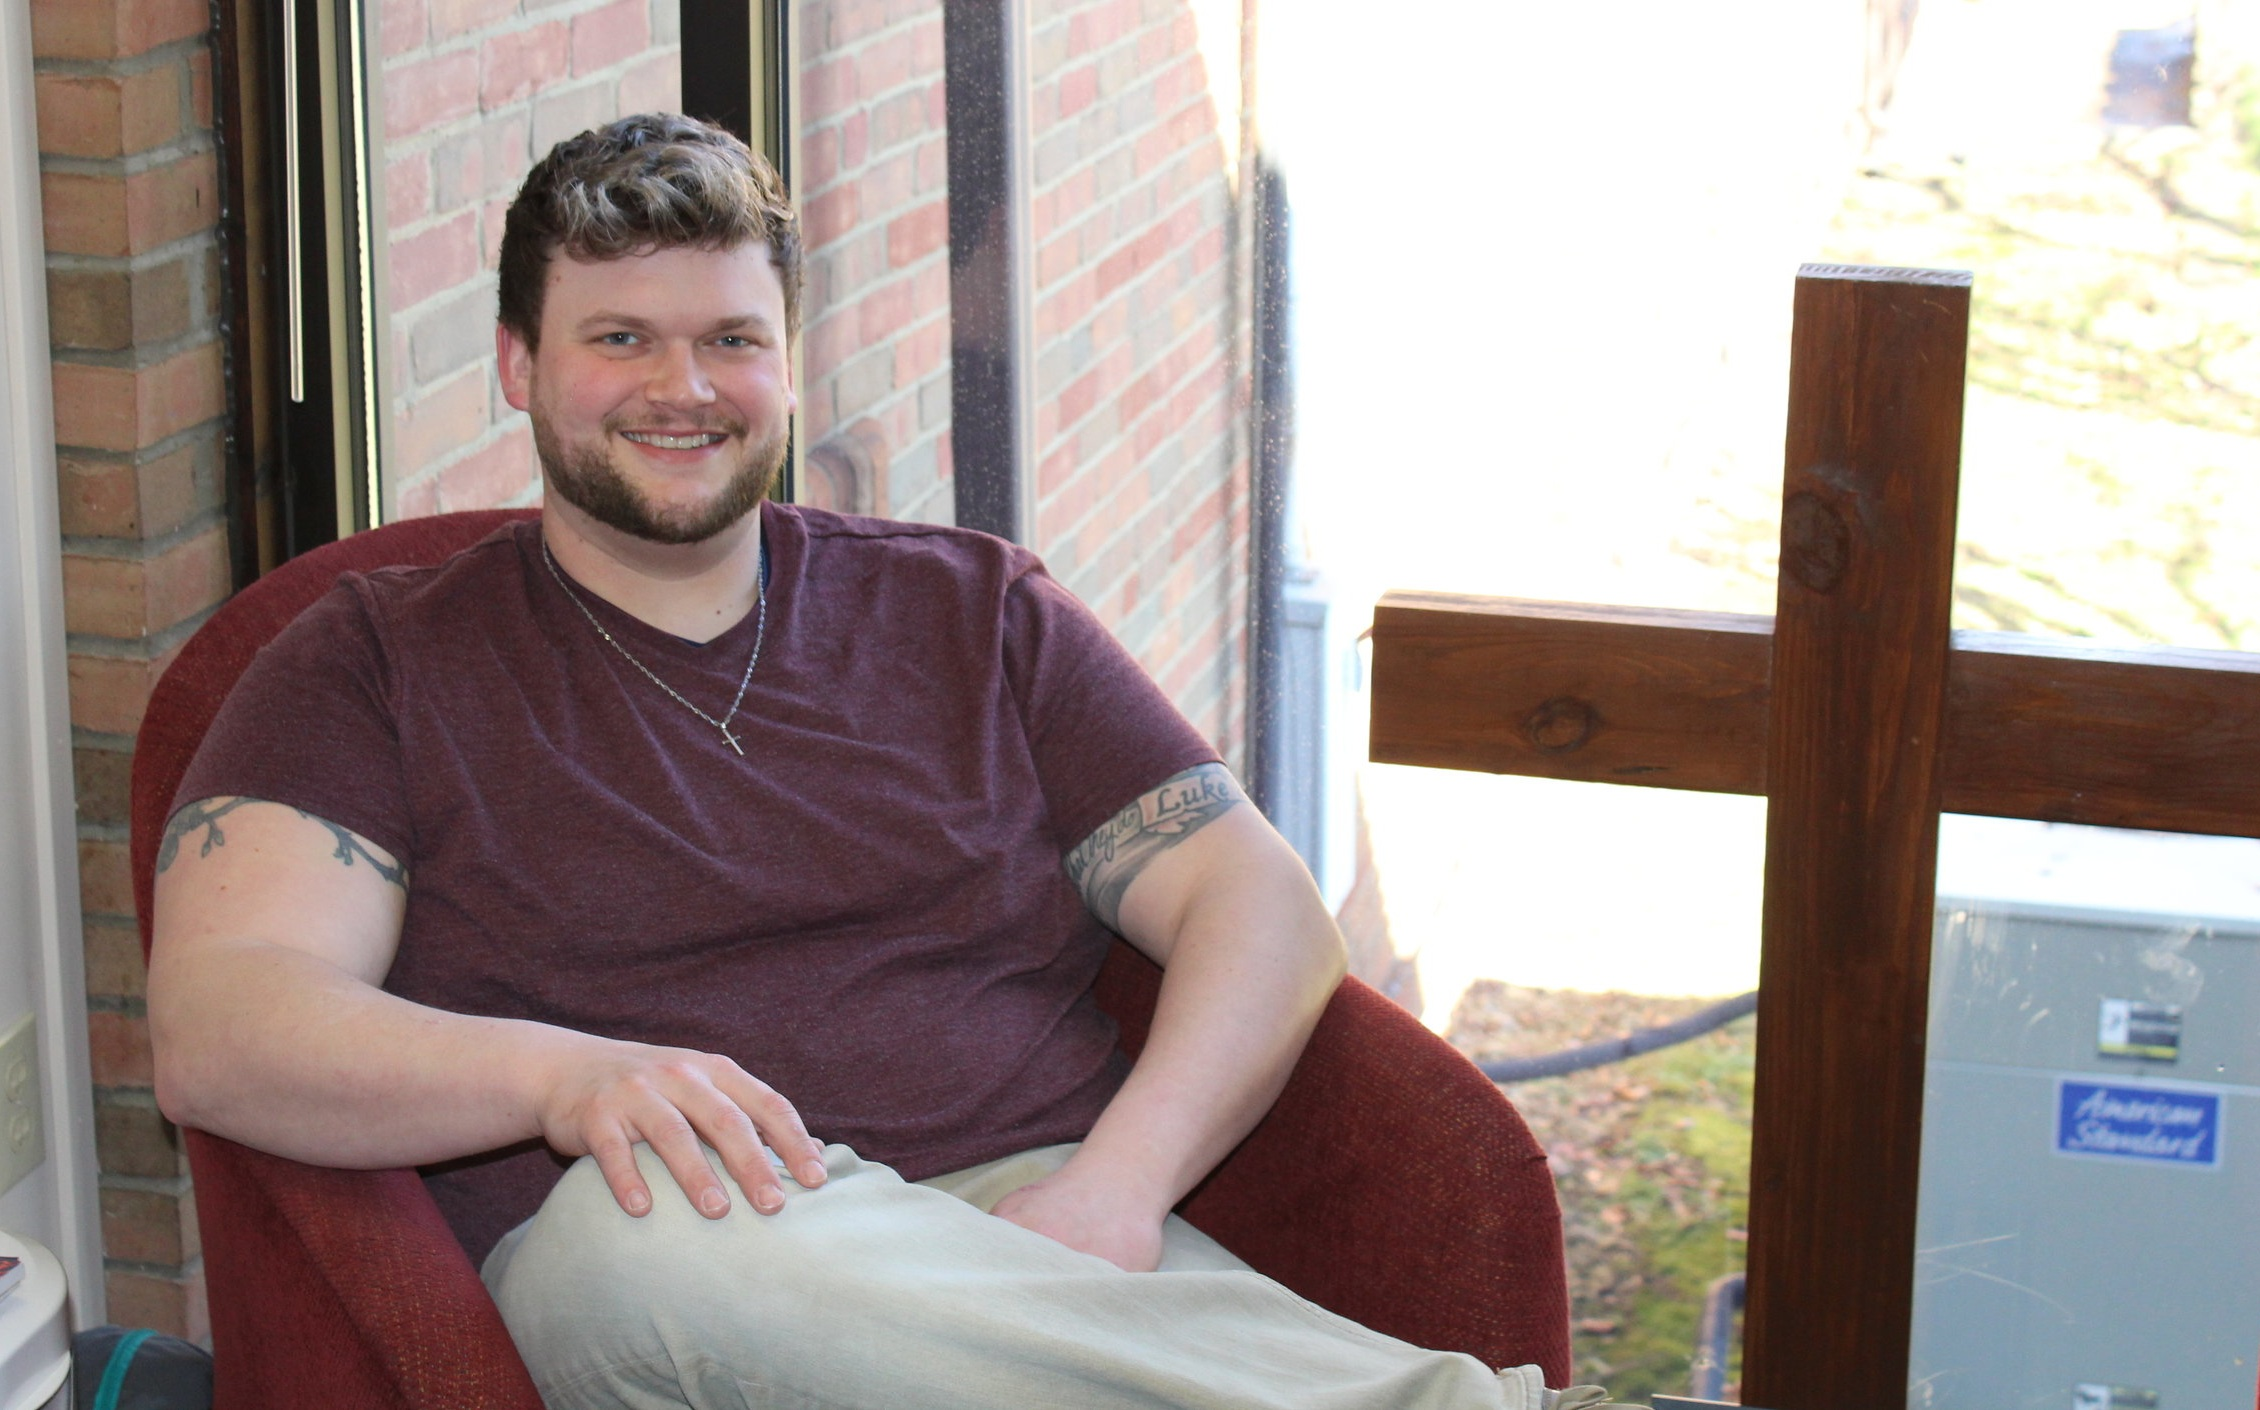 Bud Fickley finds a home as Director of Student Ministry at Dutilh Church.